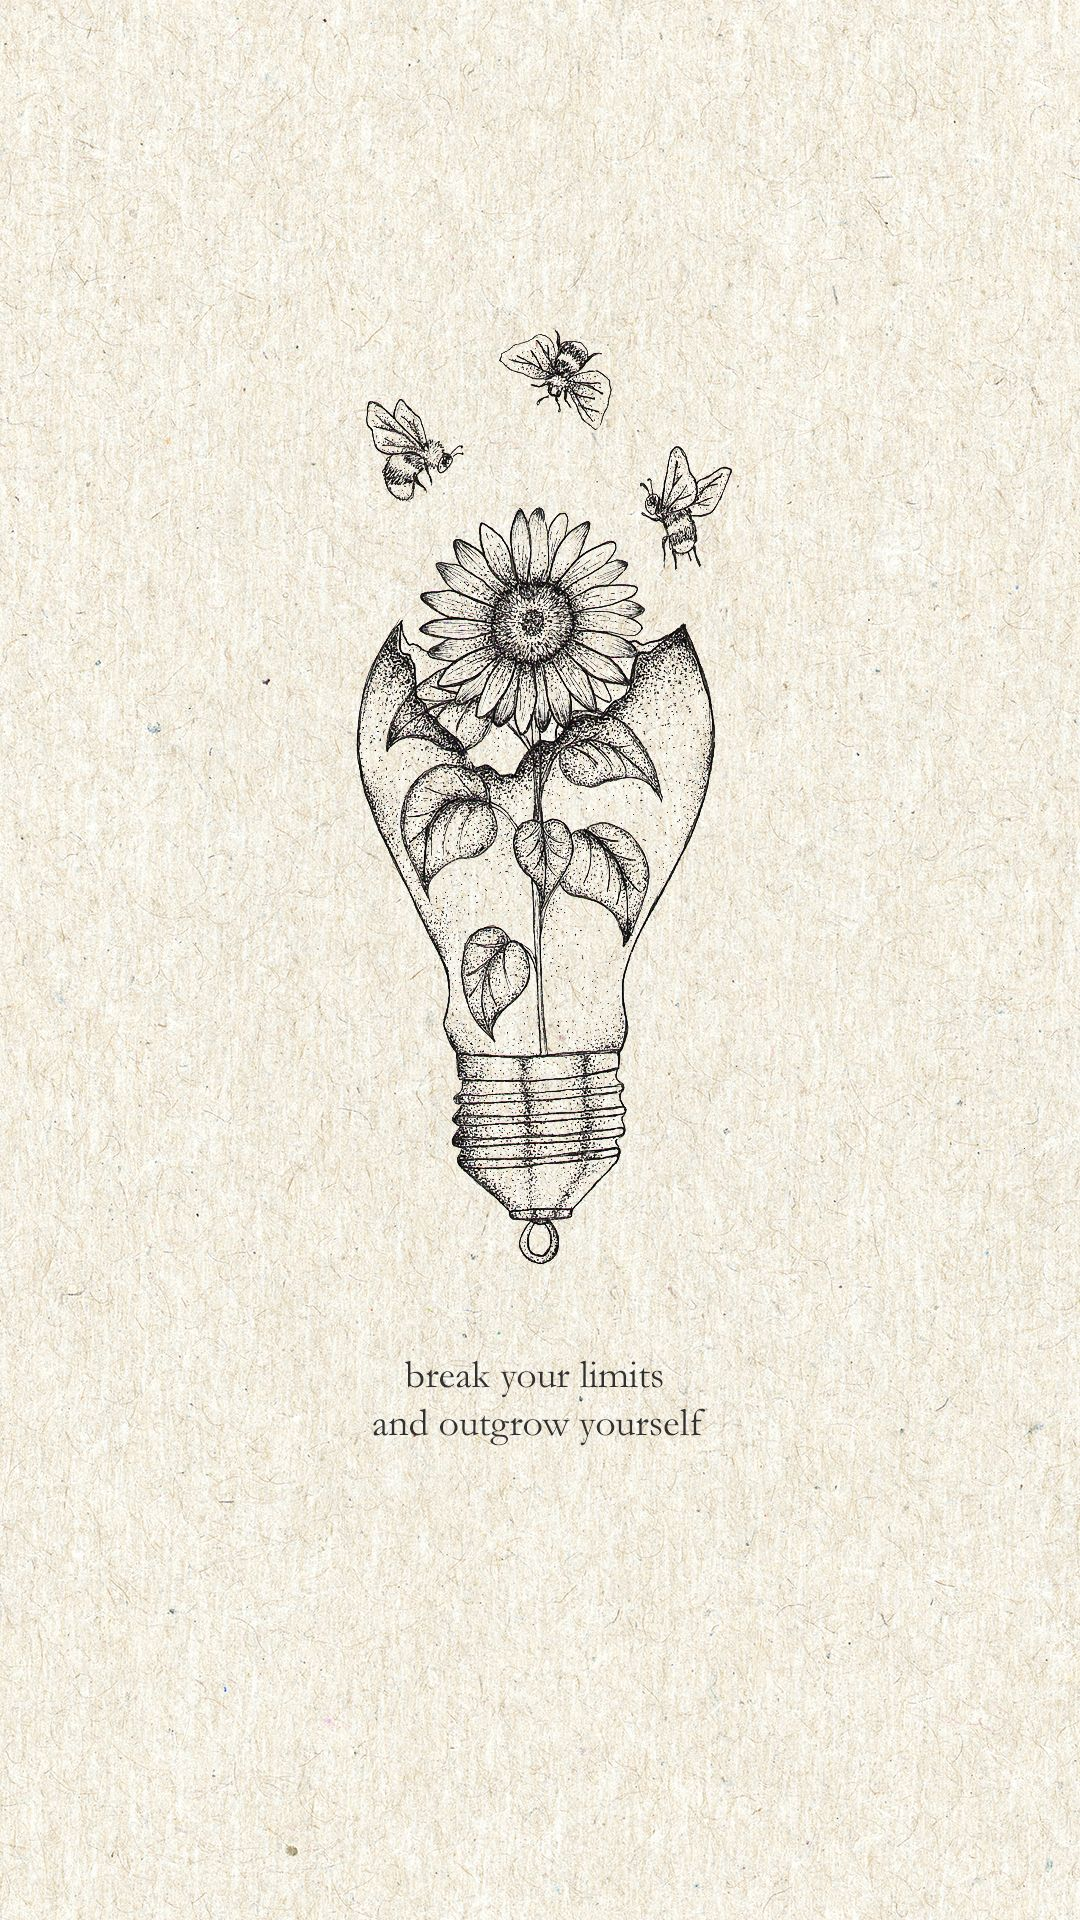 Break your limits and outgrow youtself print